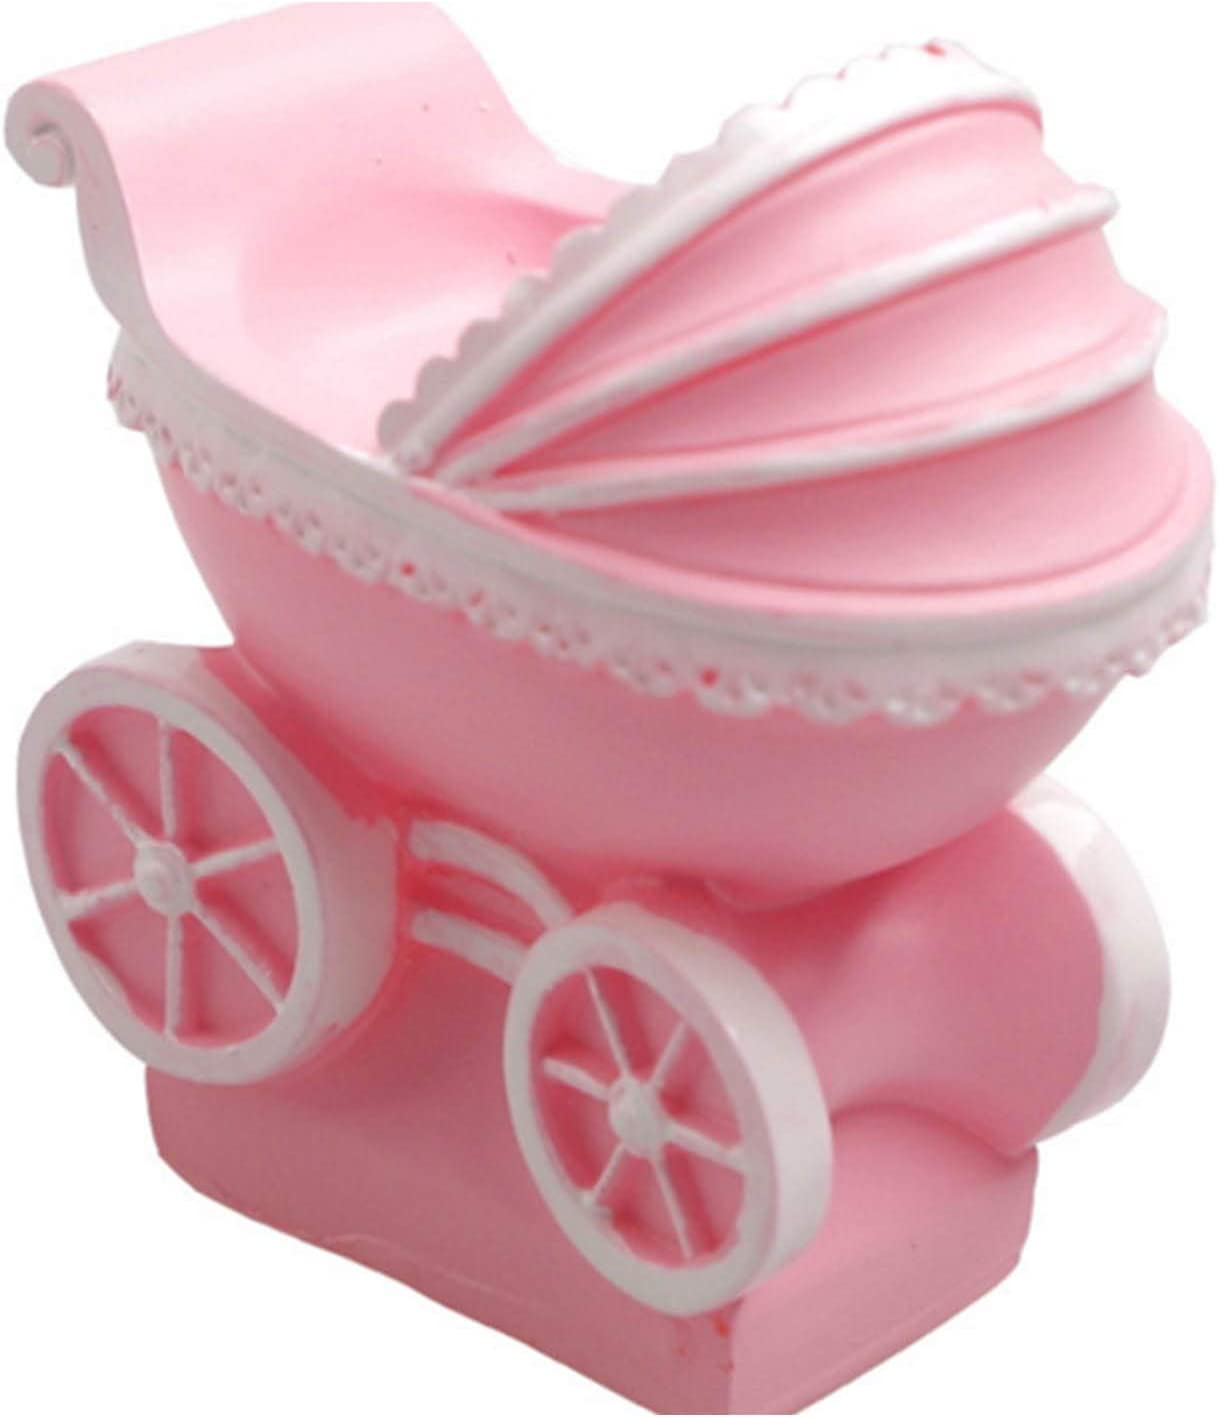 3D Baby Stroller Pram Carriage Baby-car Silicone Mold for Soap Candle Baby Shower Birthday Cake Decorating Fondant Molds Candy Chocolate Gum Paste Moulds